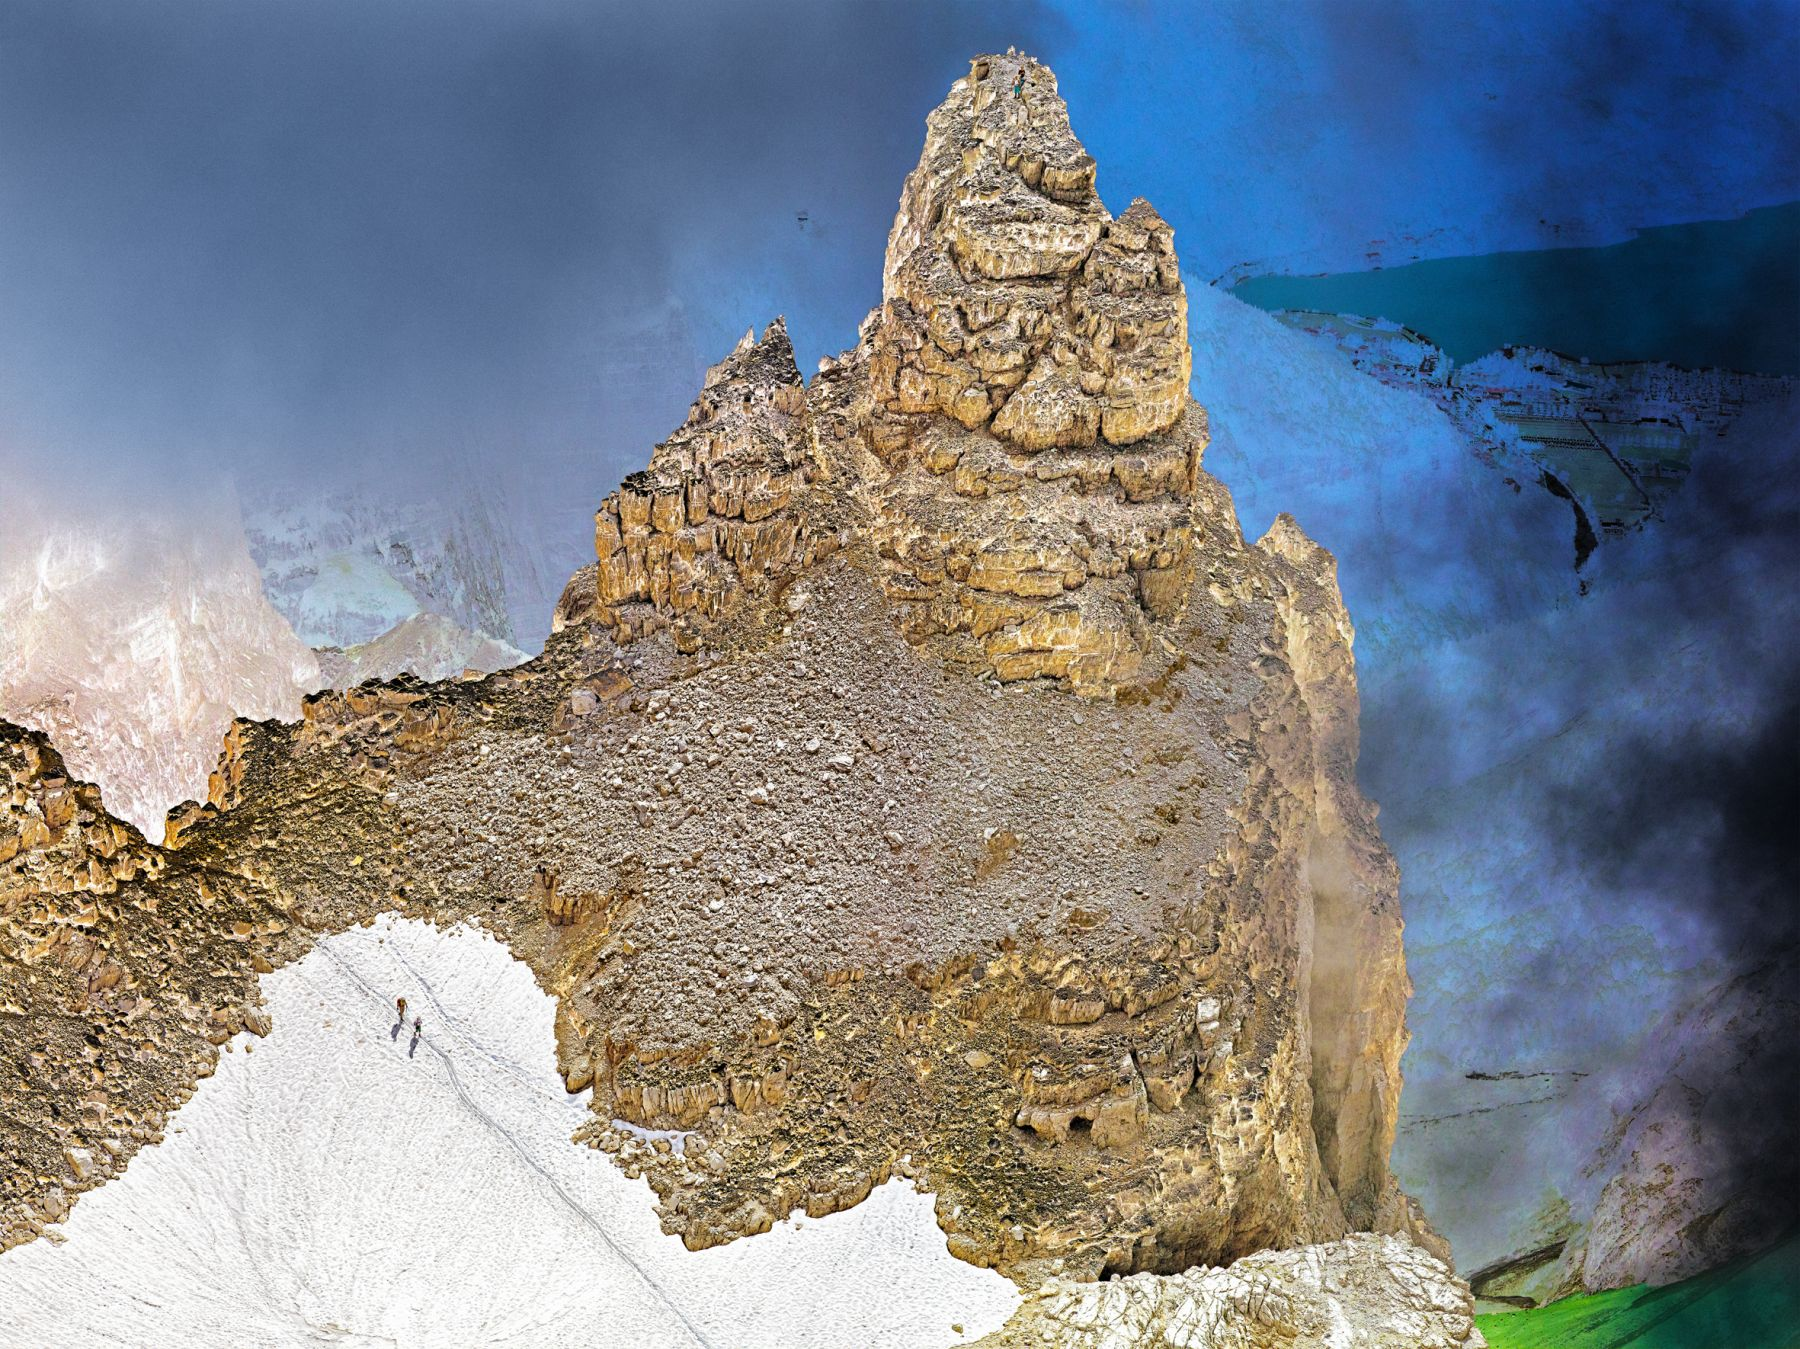 The Dolomites Project #13, 2010, 45 x 60 inch or 65 x 85 inch archival pigment print